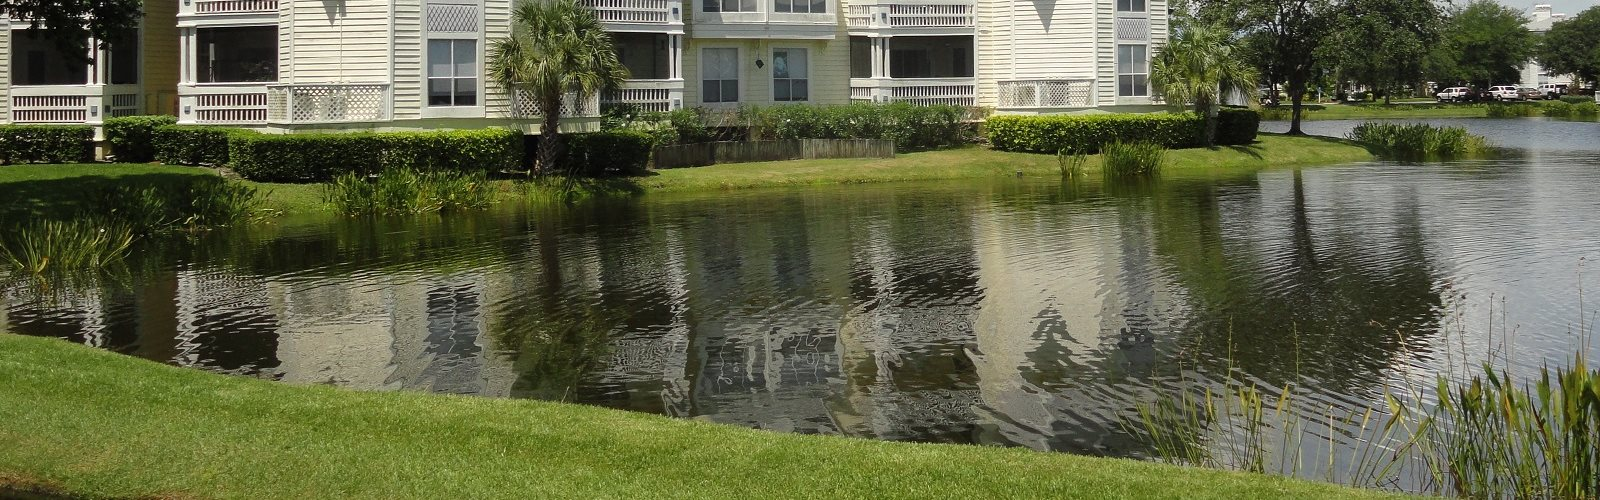 Small Lake on Site Bridgewater St. Petersburg Florida